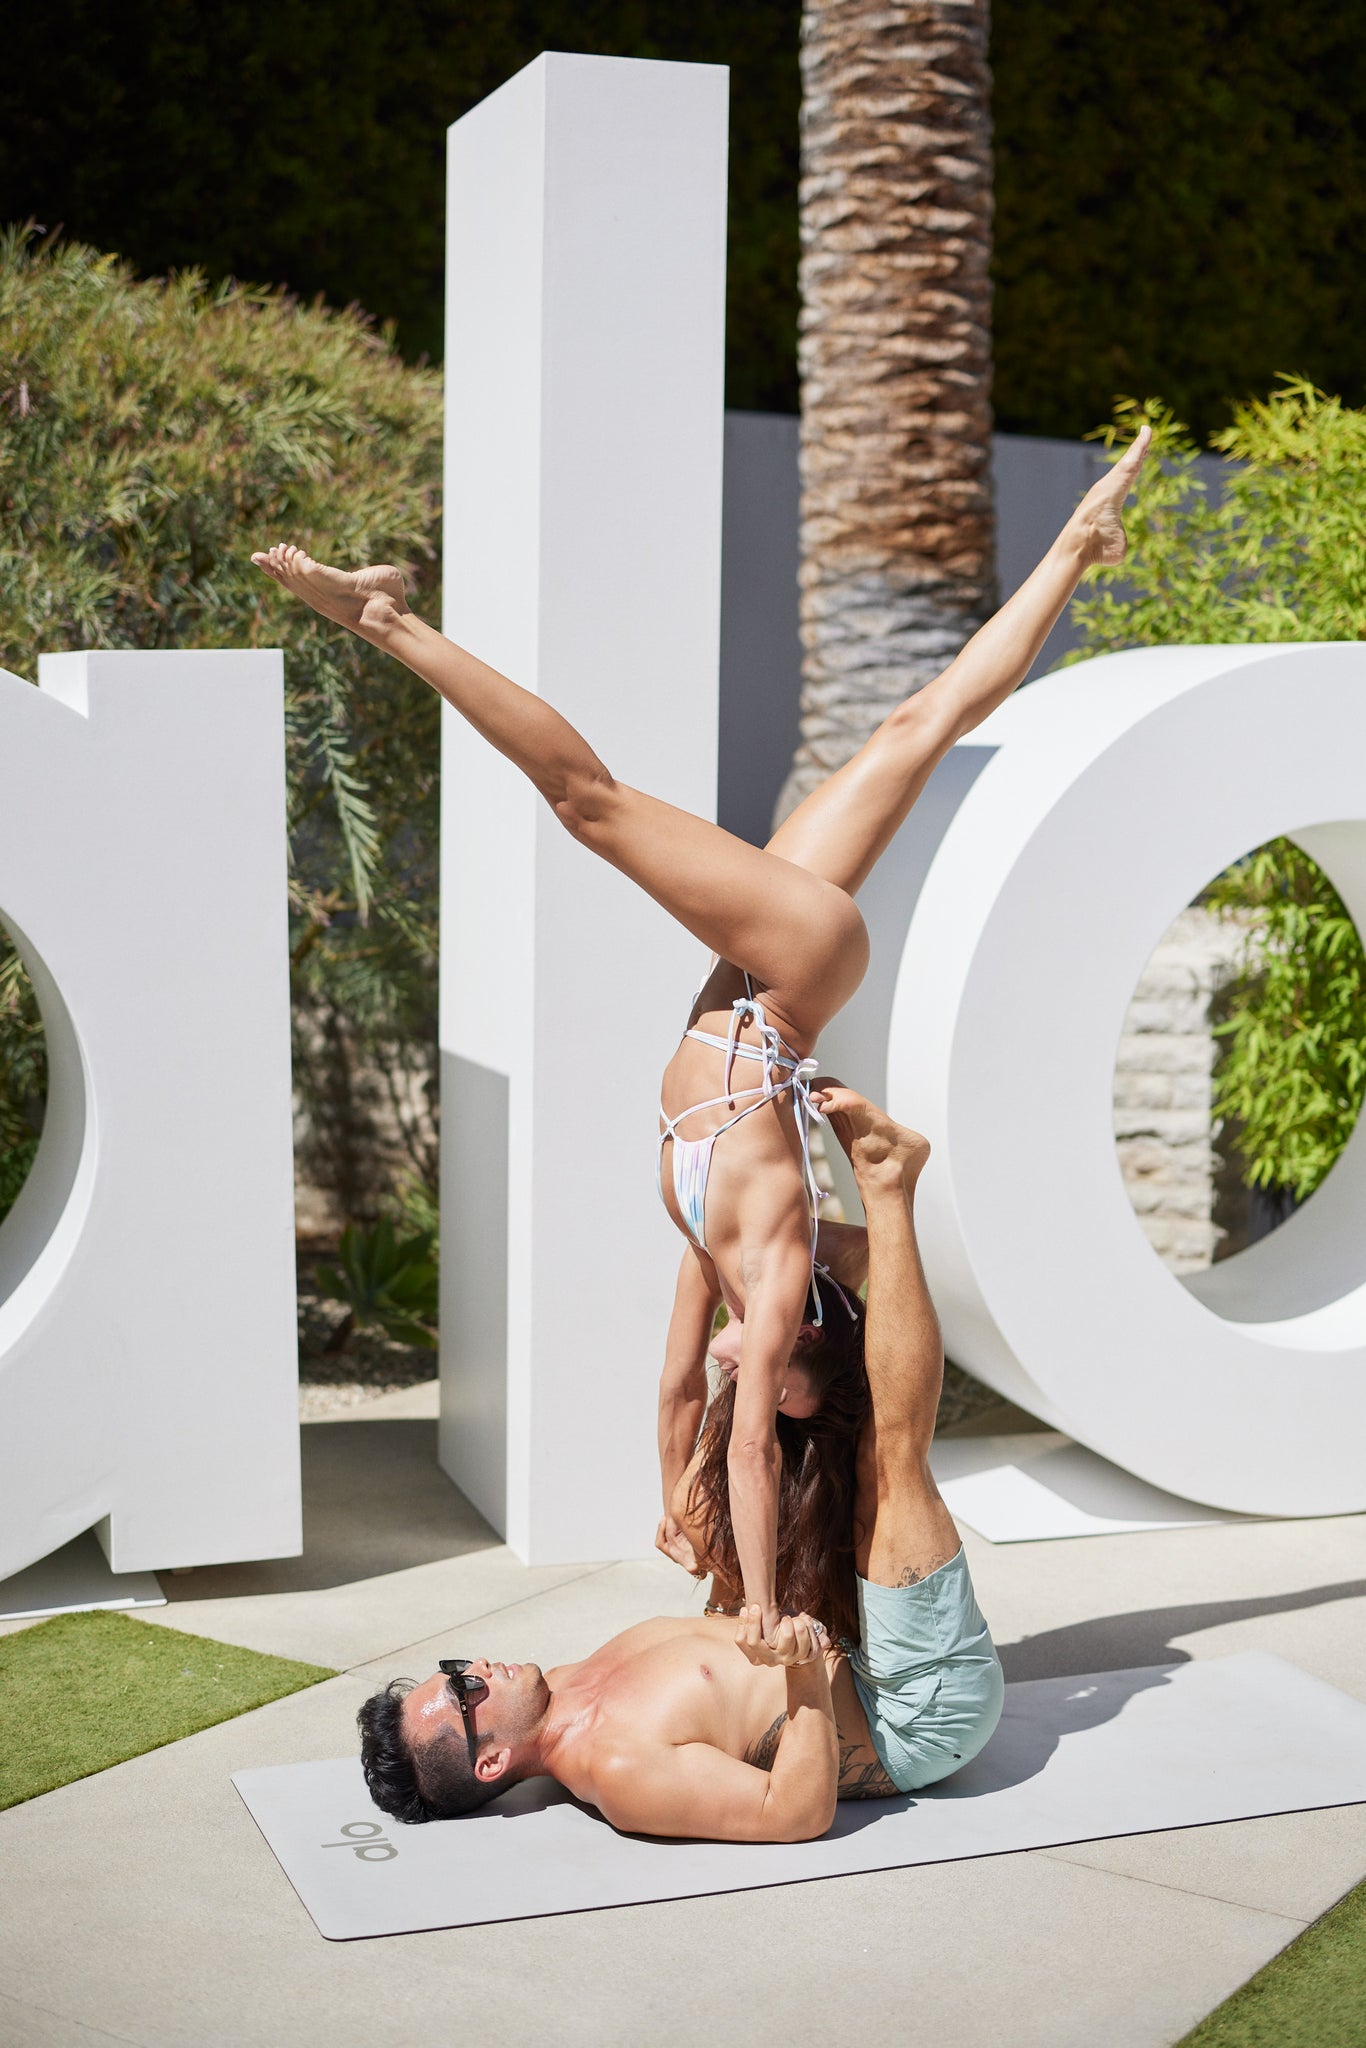 A man and a woman performing acro yoga in front of the large Alo block letters at Alo House.